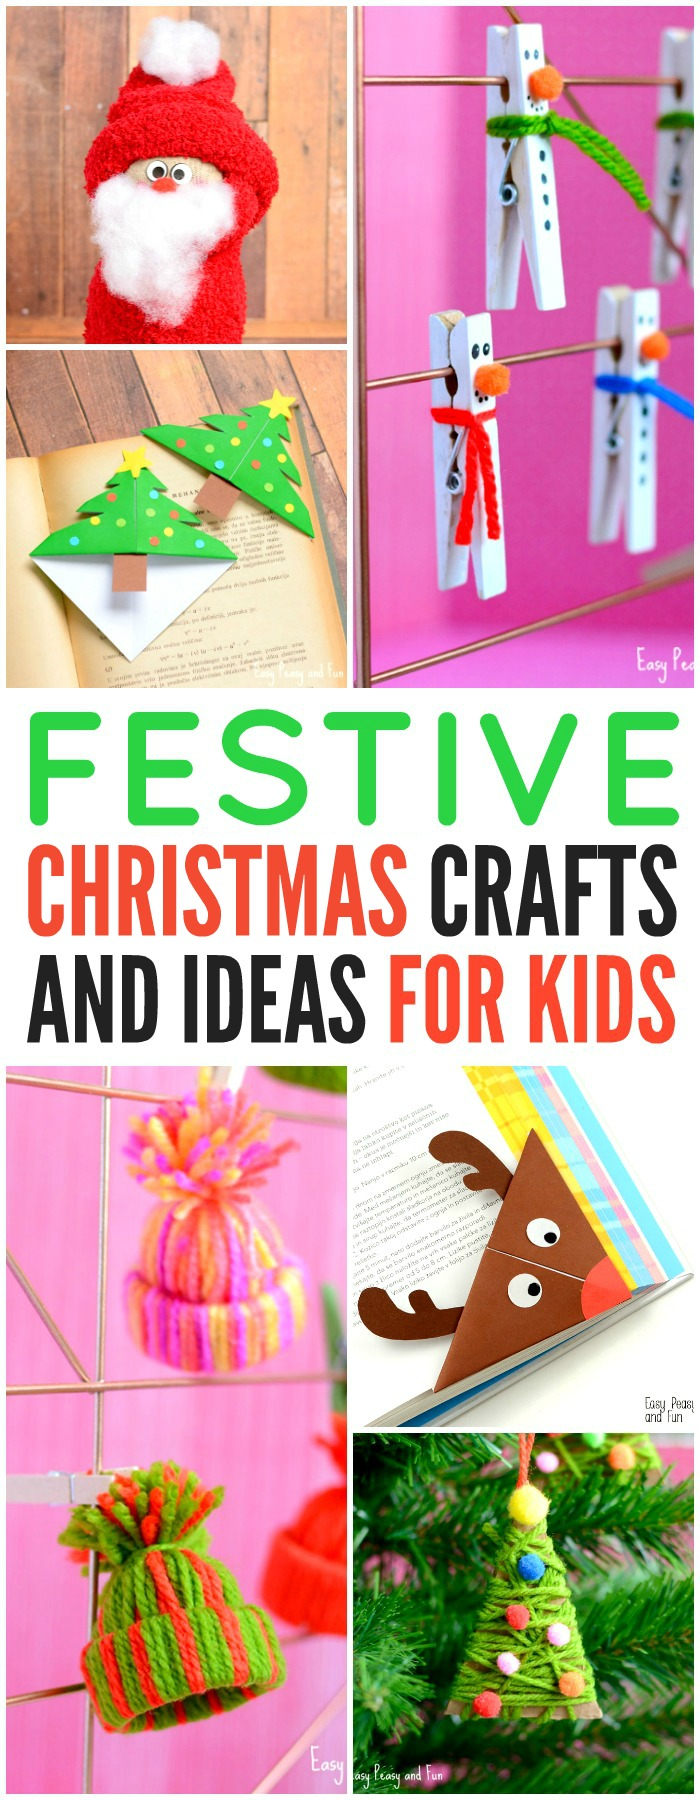 Festive Christmas Crafts For Kids Tons Of Art And Crafting Ideas Easy Peasy And Fun